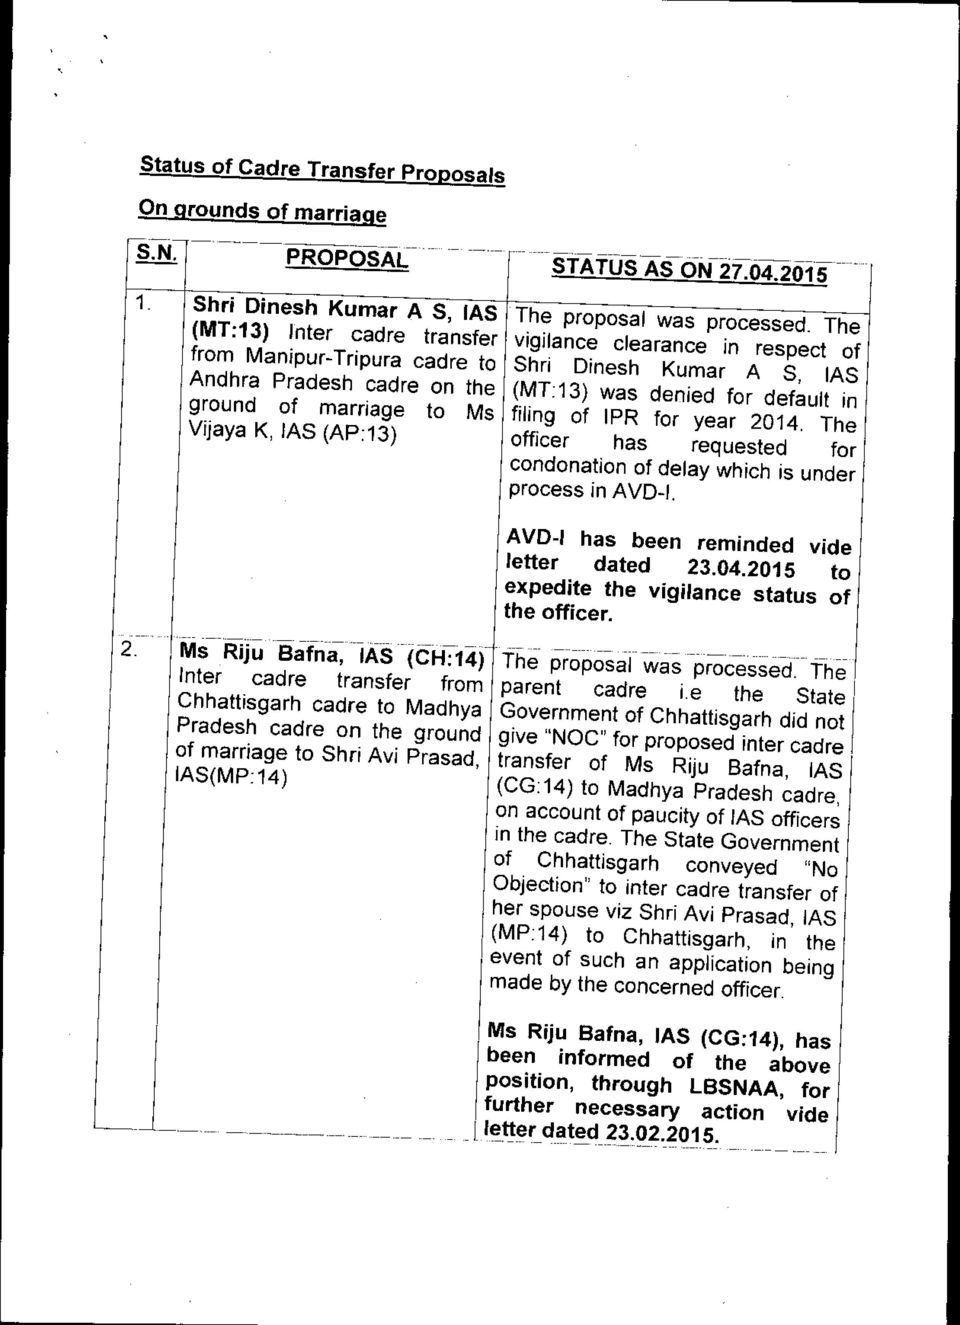 Dinesh Kumar A S, IAS (MT:13) was denied for default in filing of IPR for year 2014. The officer has requested for condonation of delay which is under process in AVD-I.